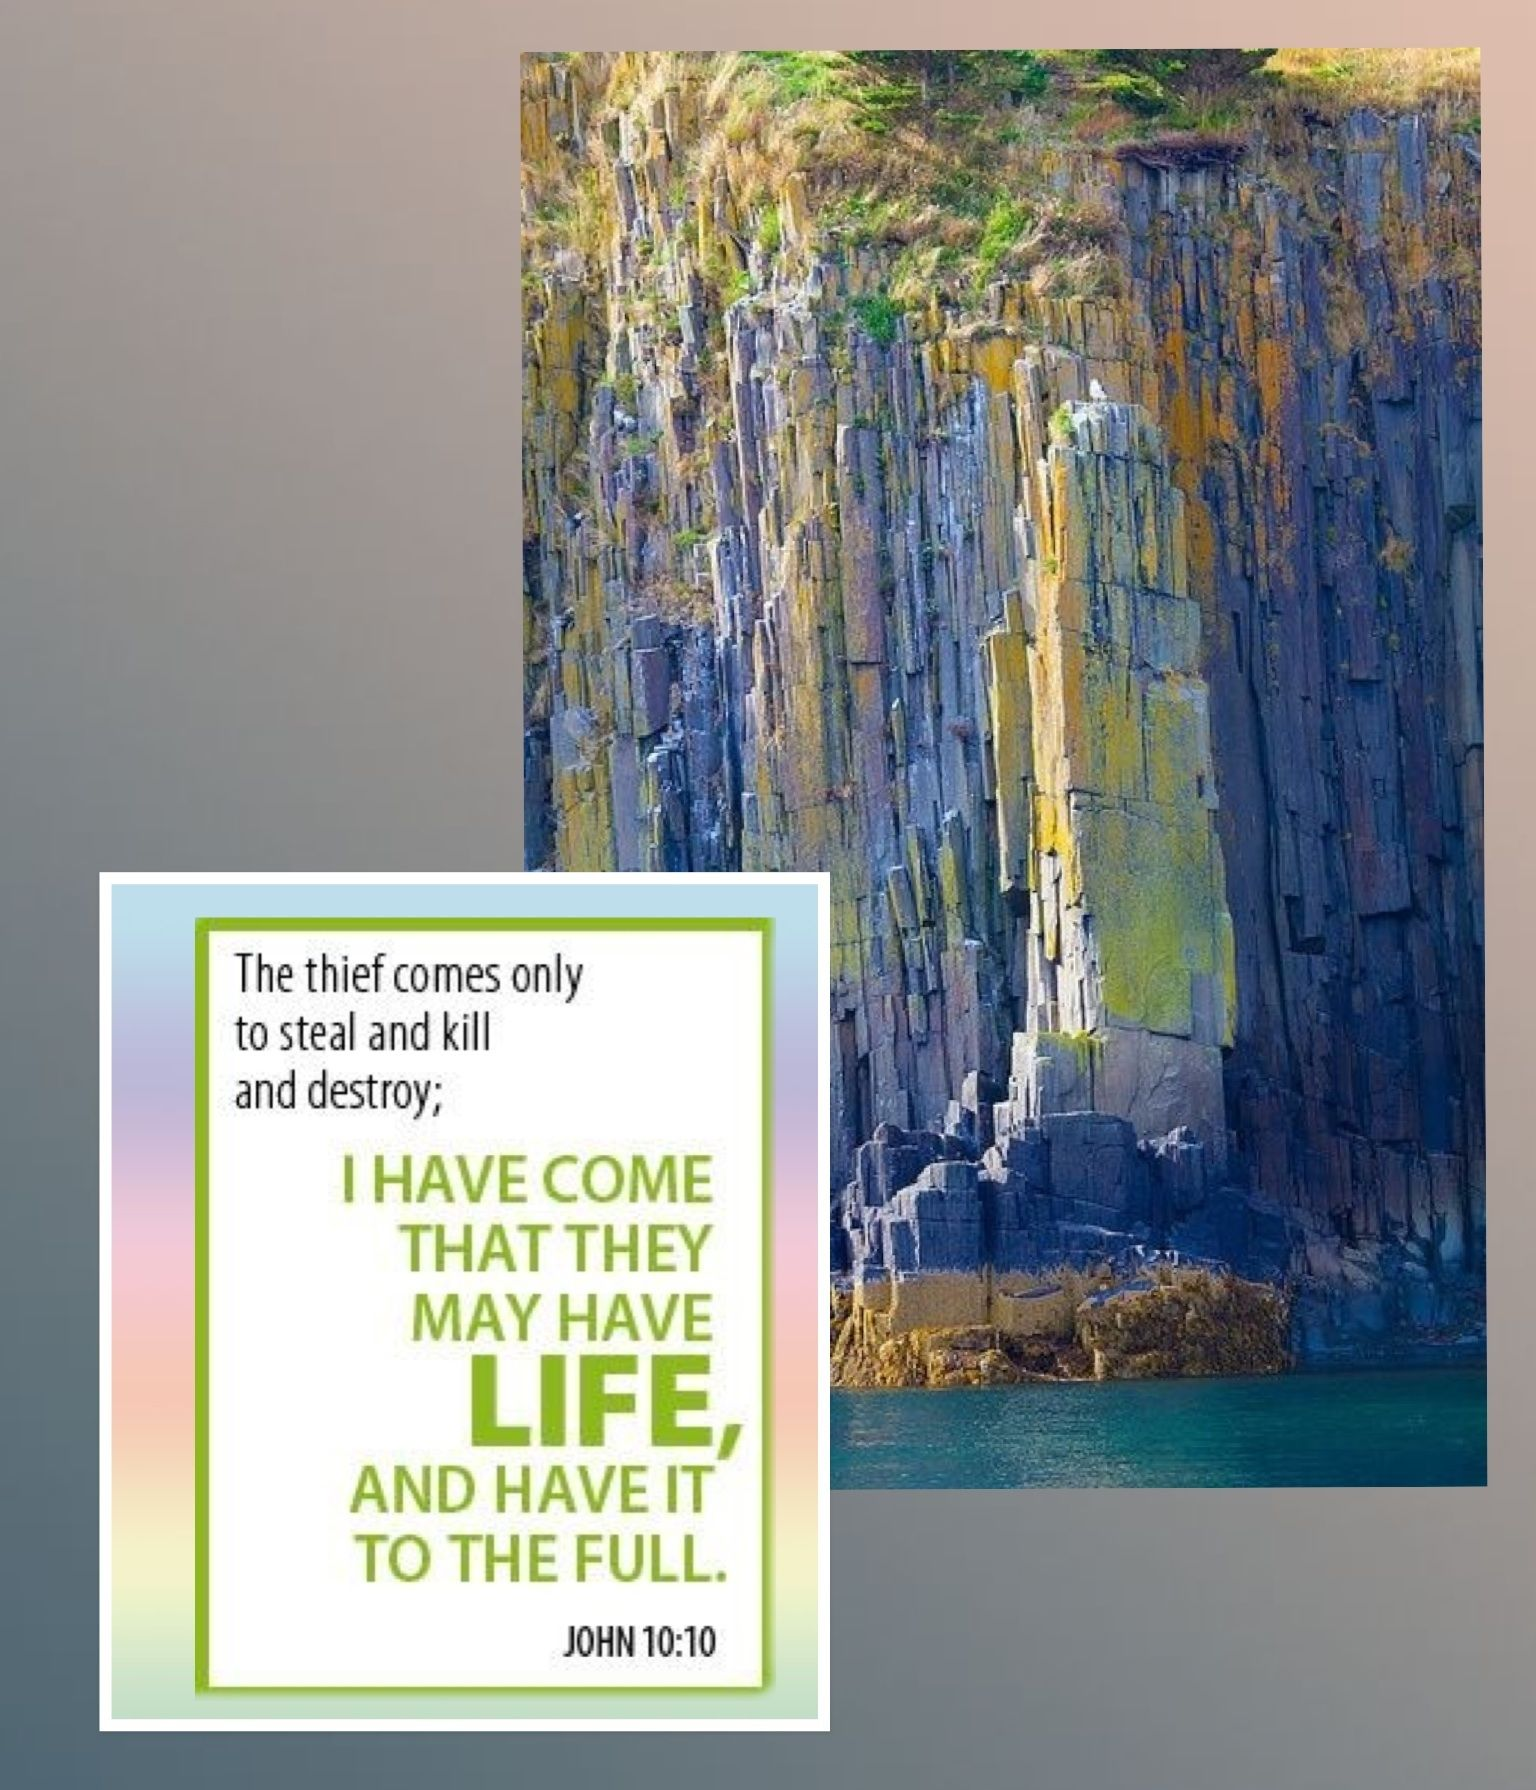 John 10:10 - made by Dave L Walli with Bazaart #collage